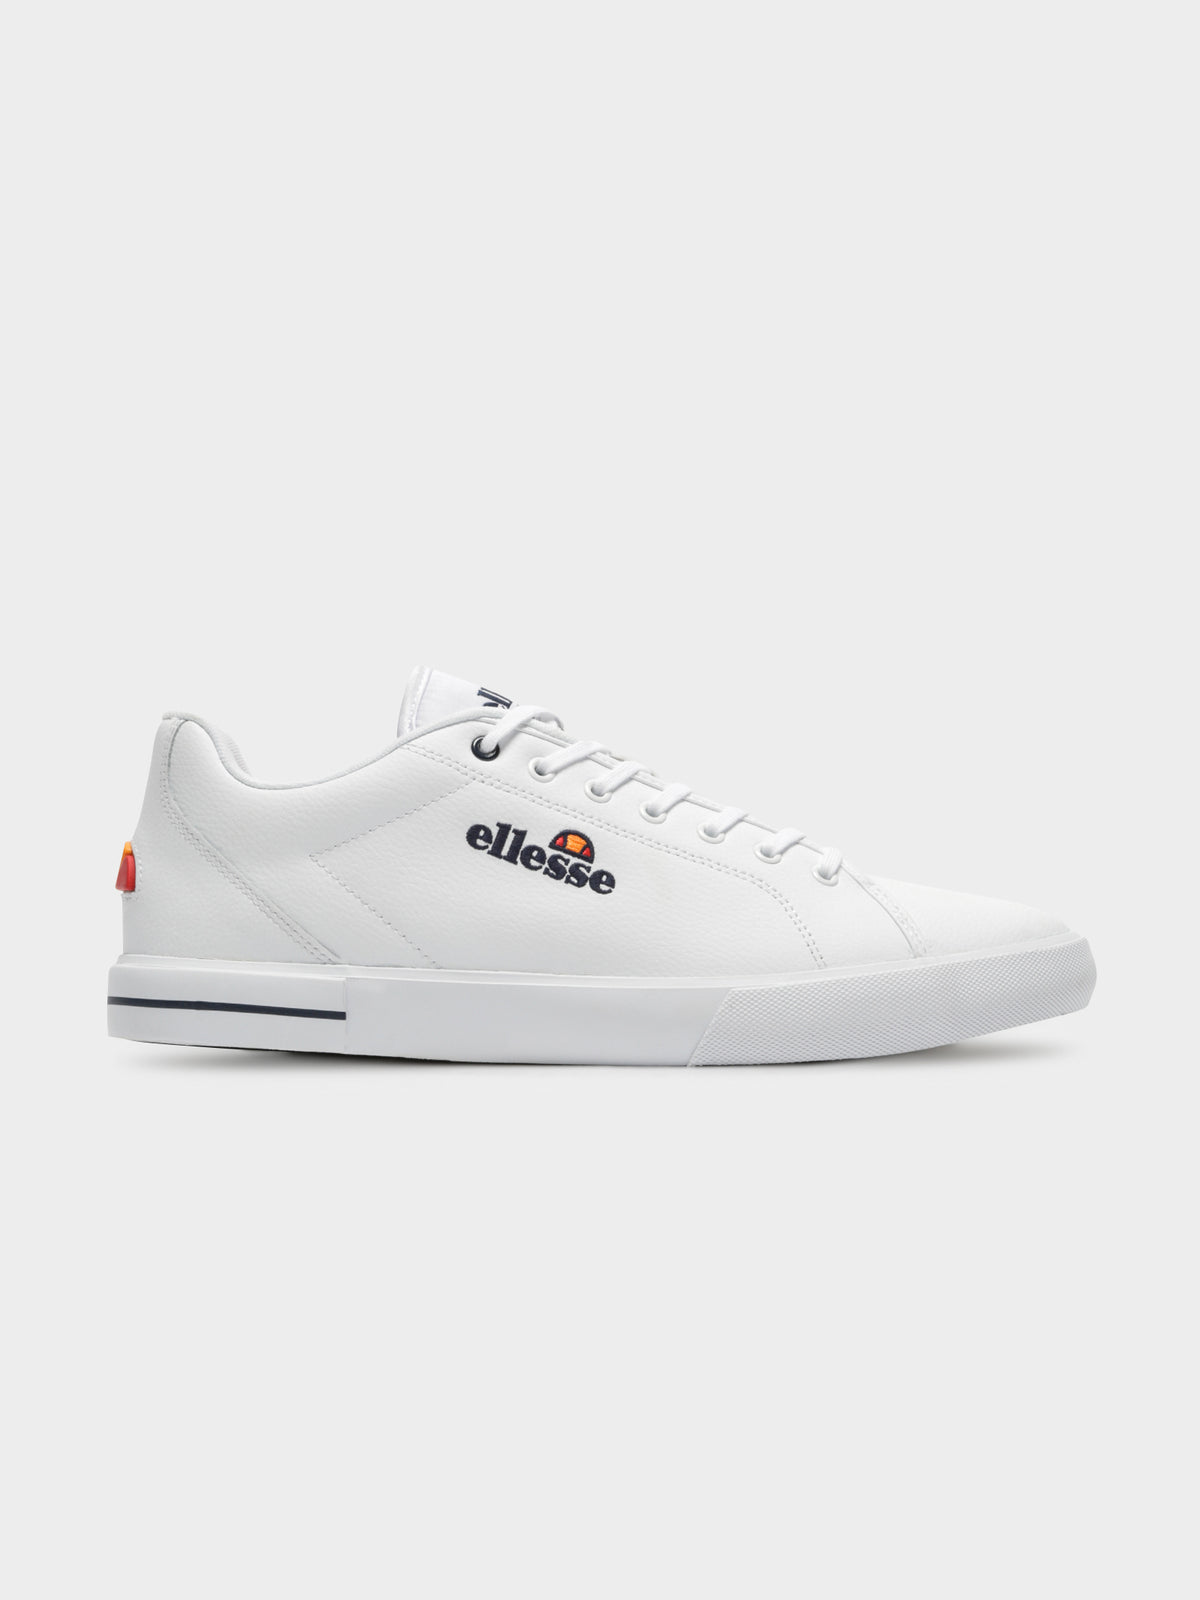 Taggia Sneakers in White & Dark Blue